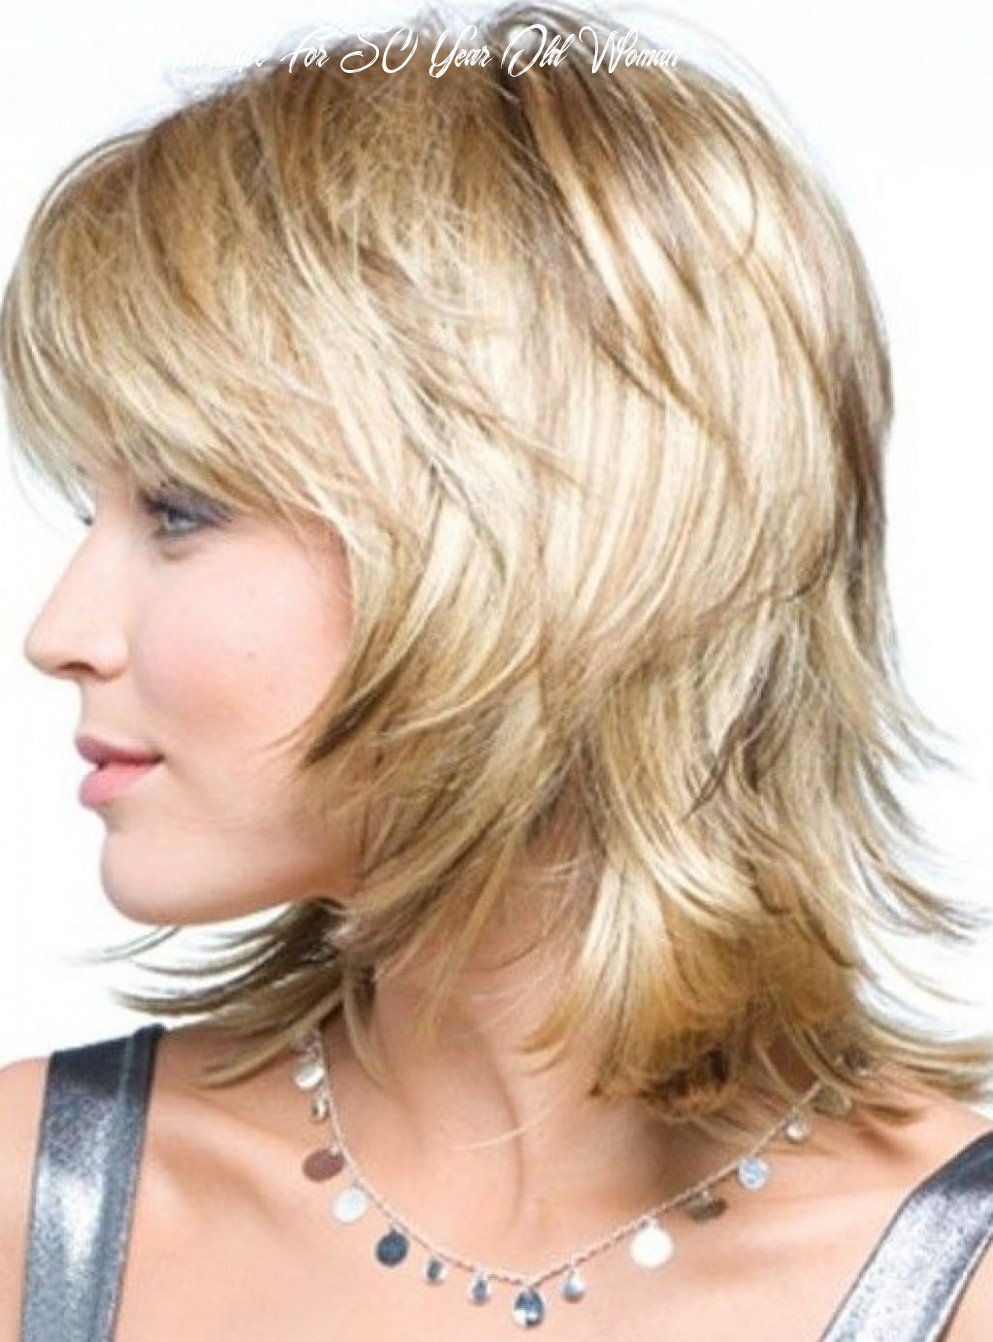 Pin on womens hairstyles medium hairstyle for 50 year old woman